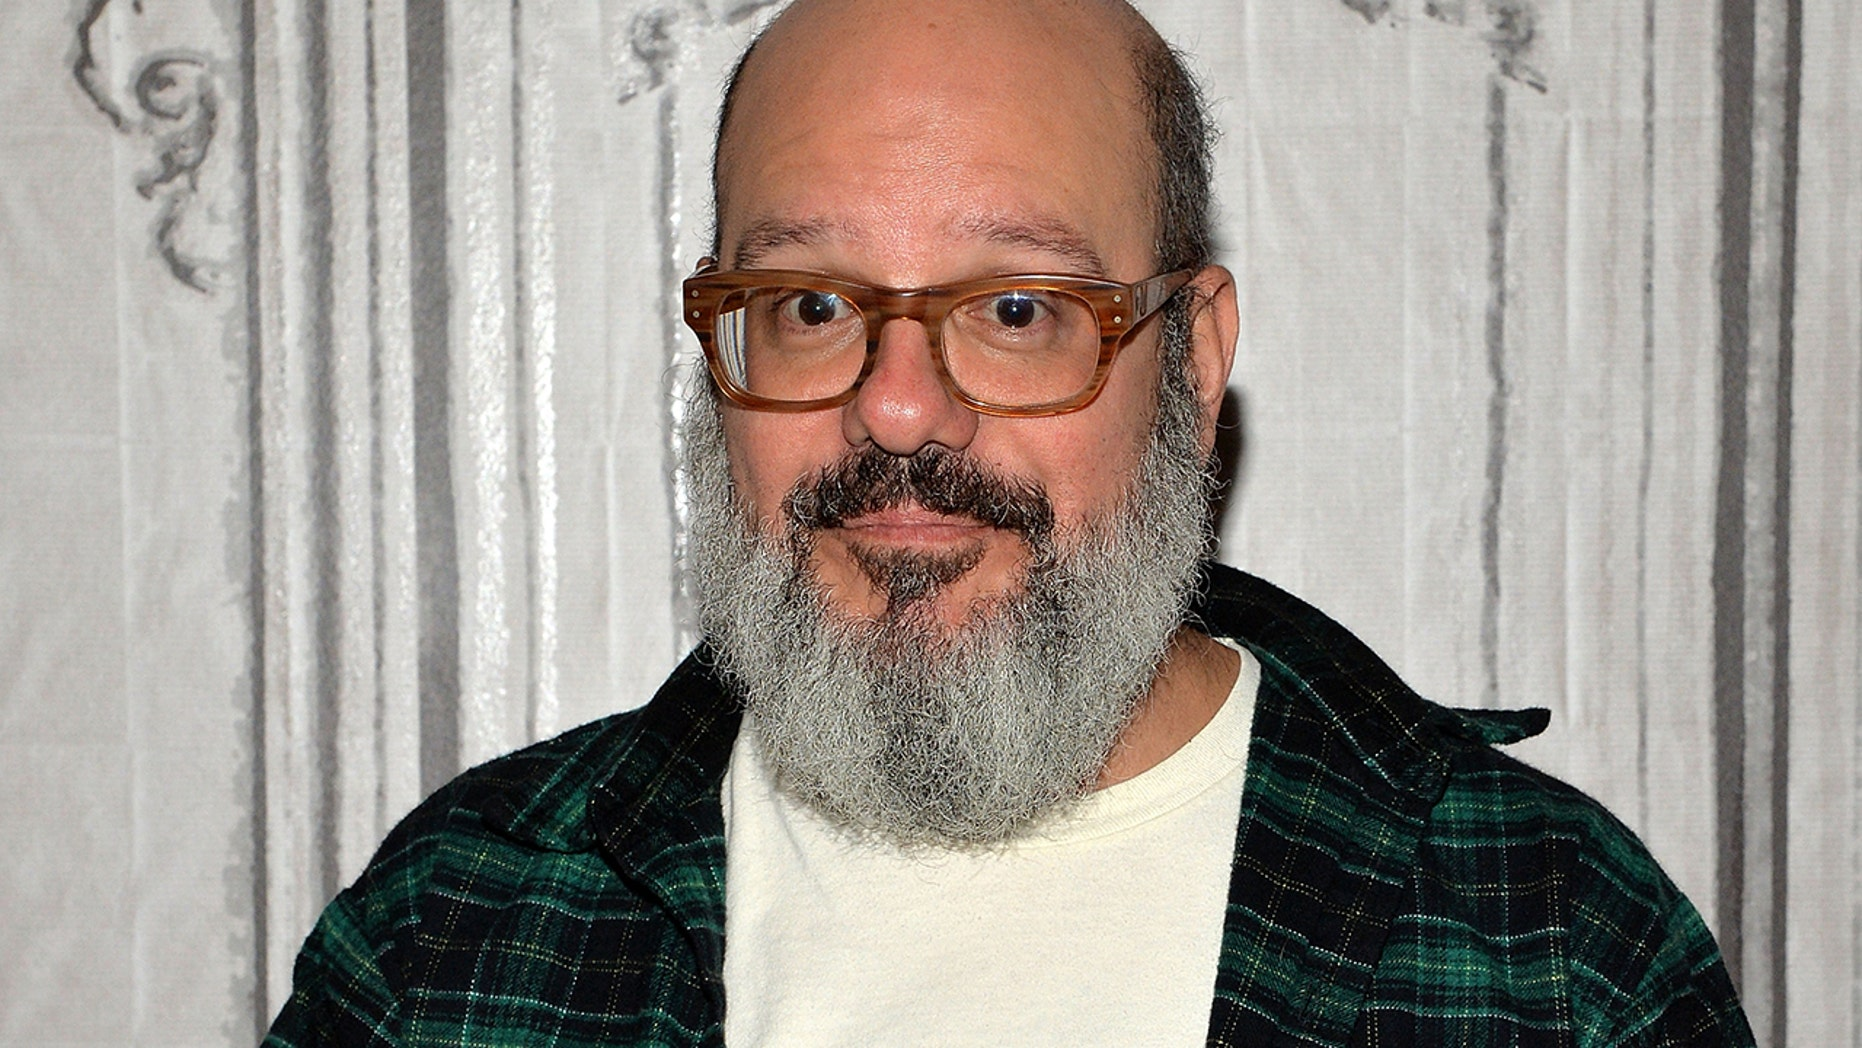 Comedian David Cross offended many people with a tweet he sent out wearing traditional Mormon undergarments.